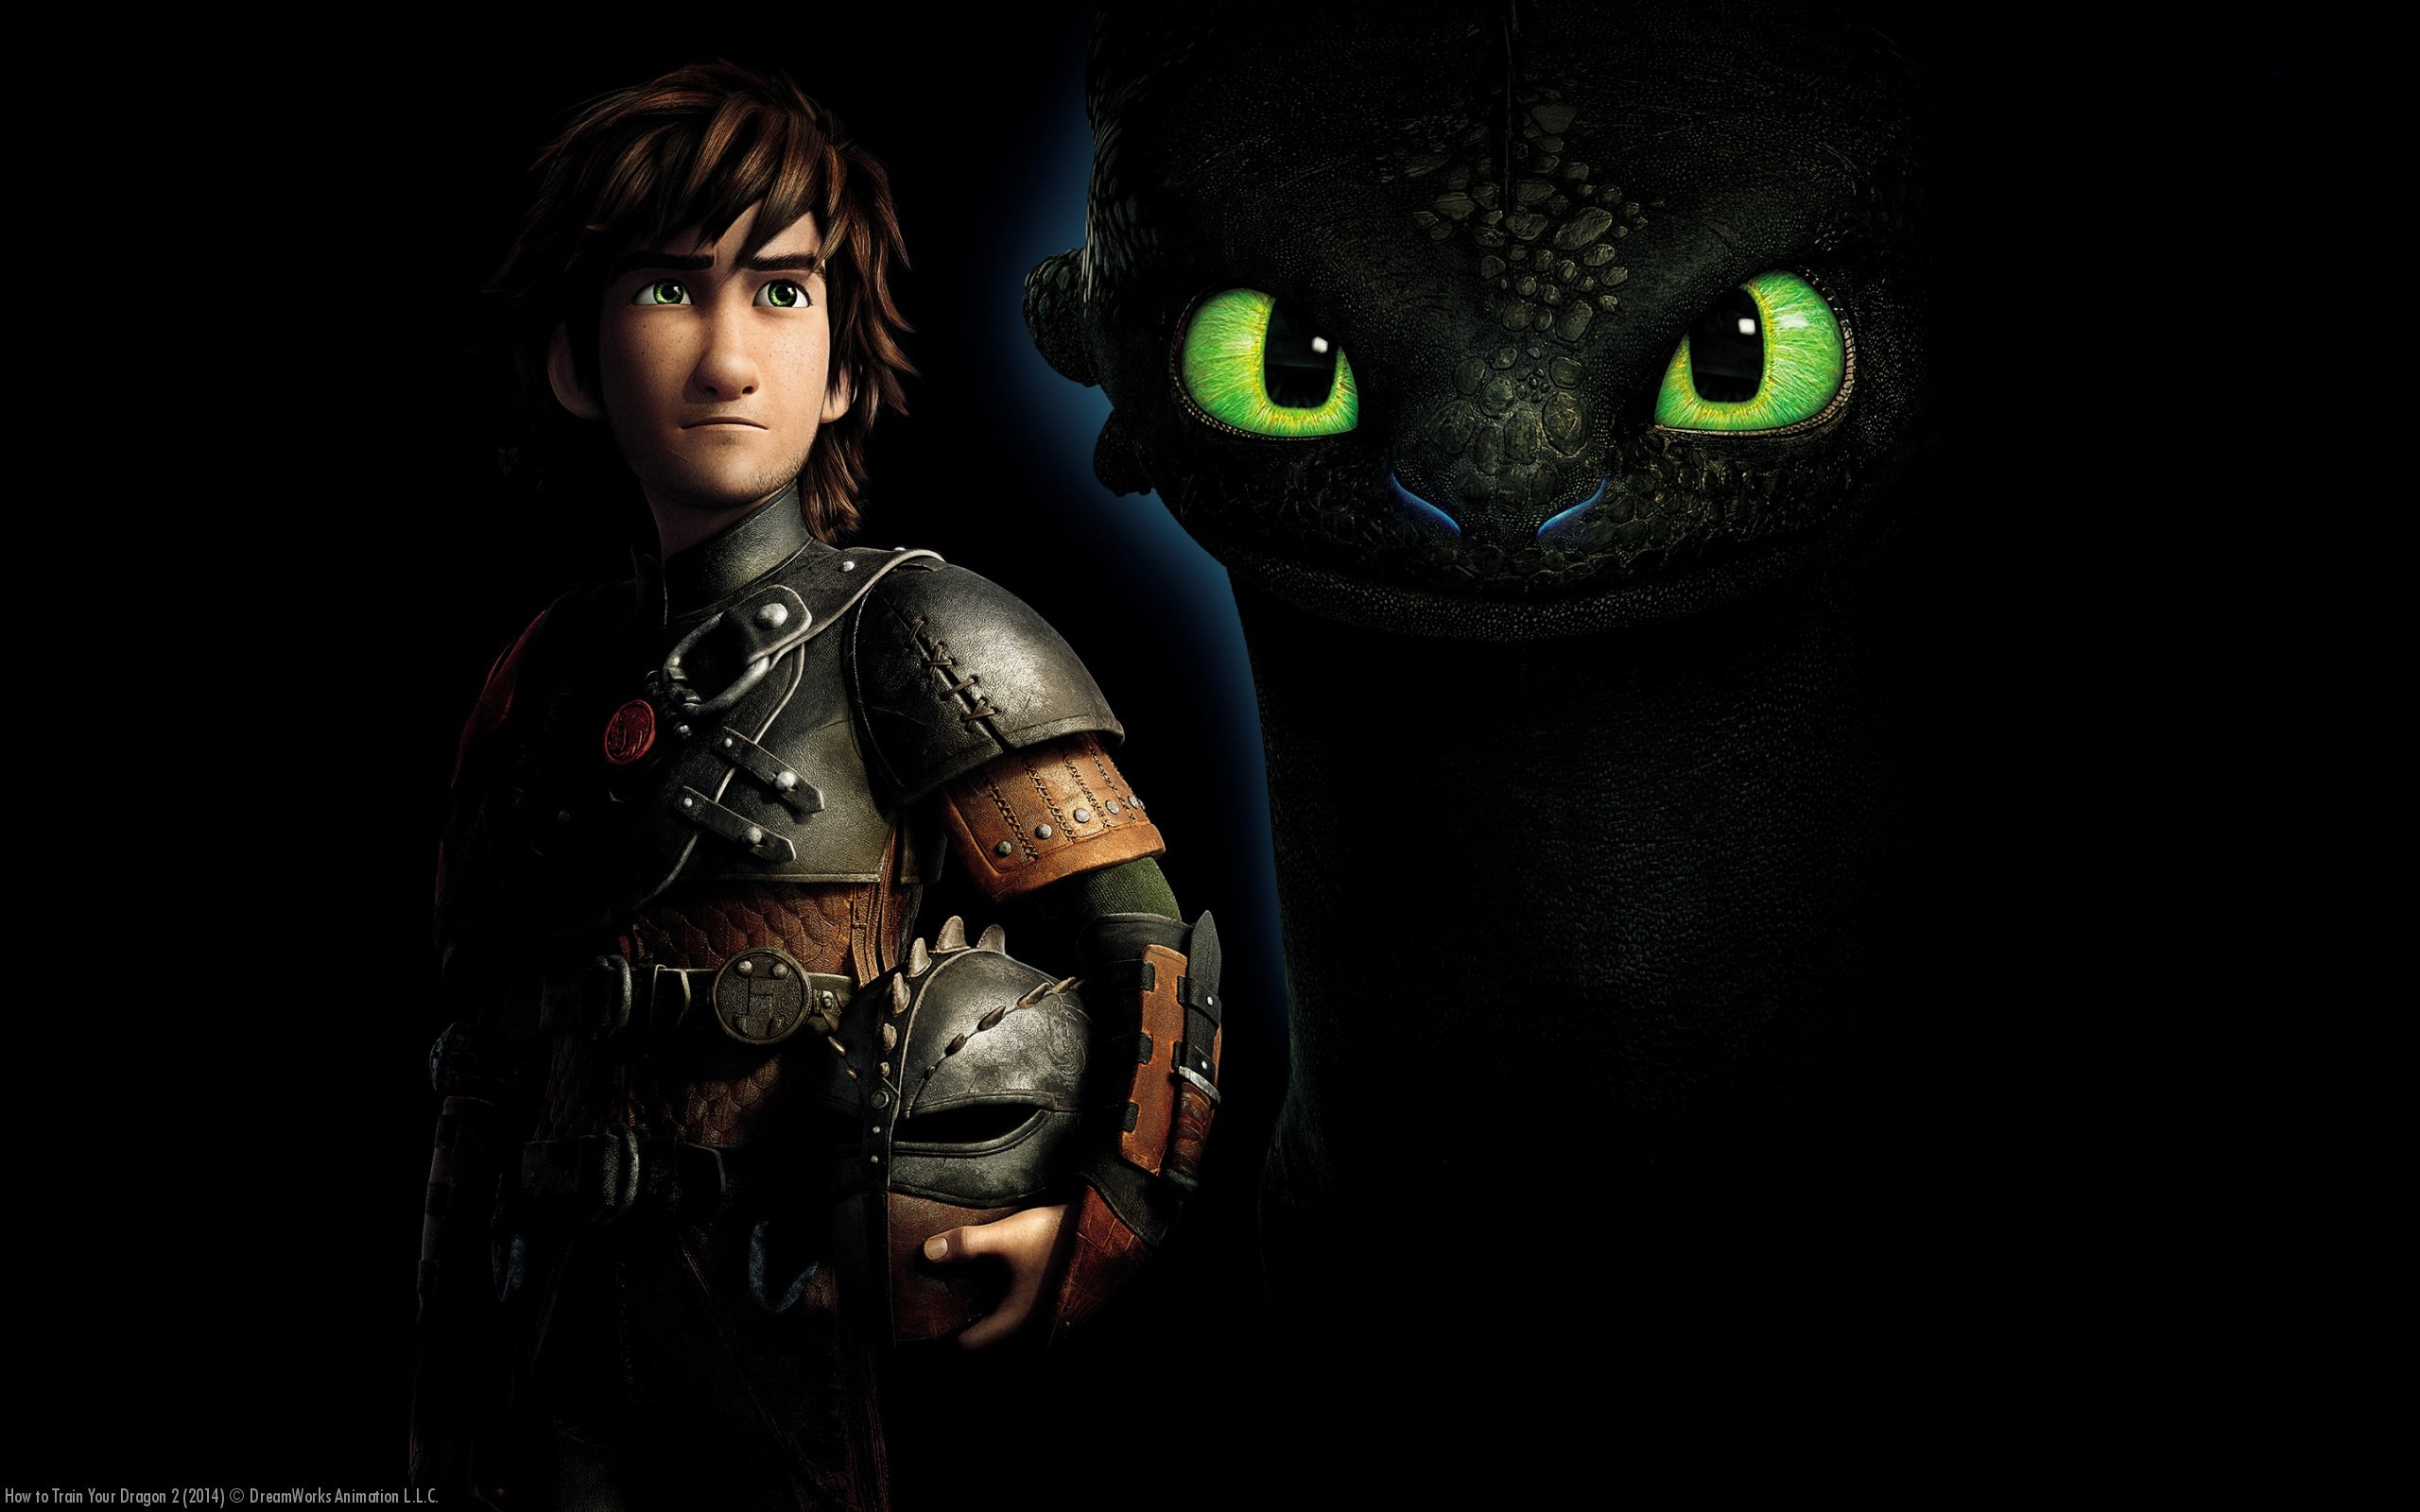 Toothless and Hiccup How To Train Your Dragon 2 HD Wallpaper 6848 2560x1600